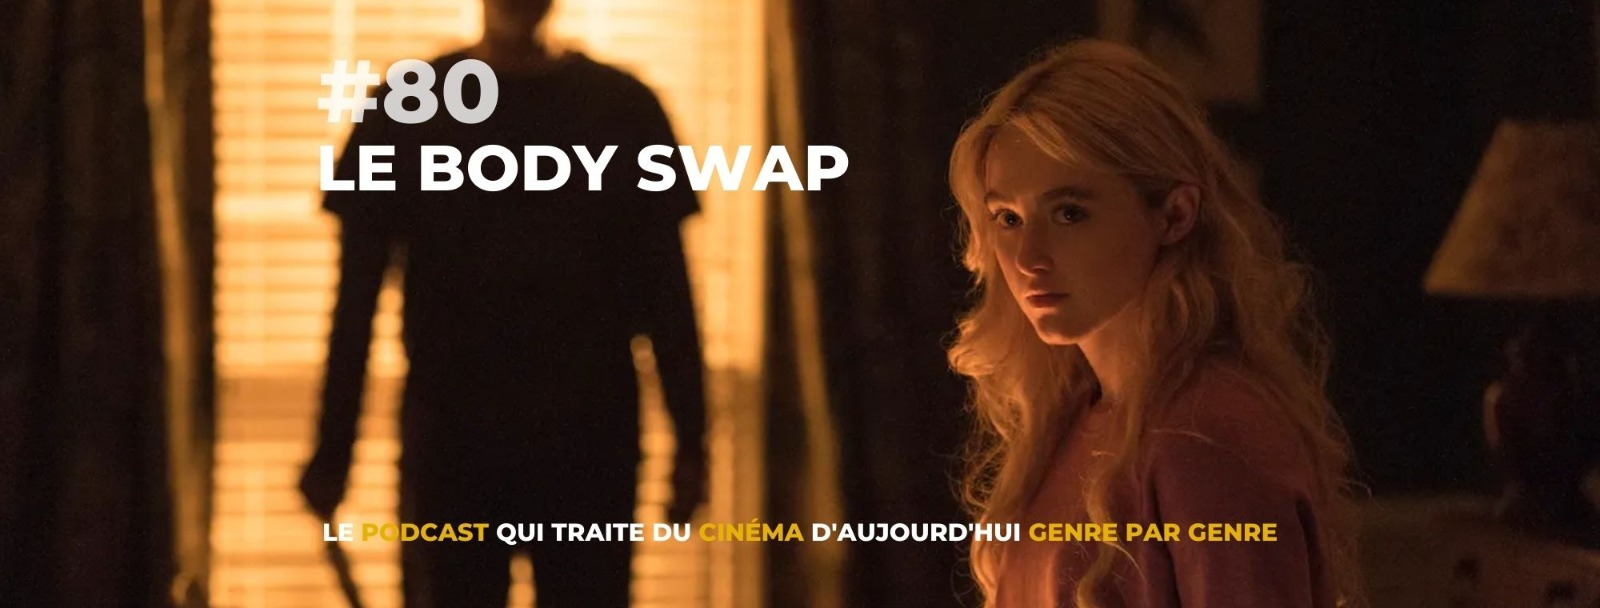 Parlons Péloches - #80 Le body swap movie